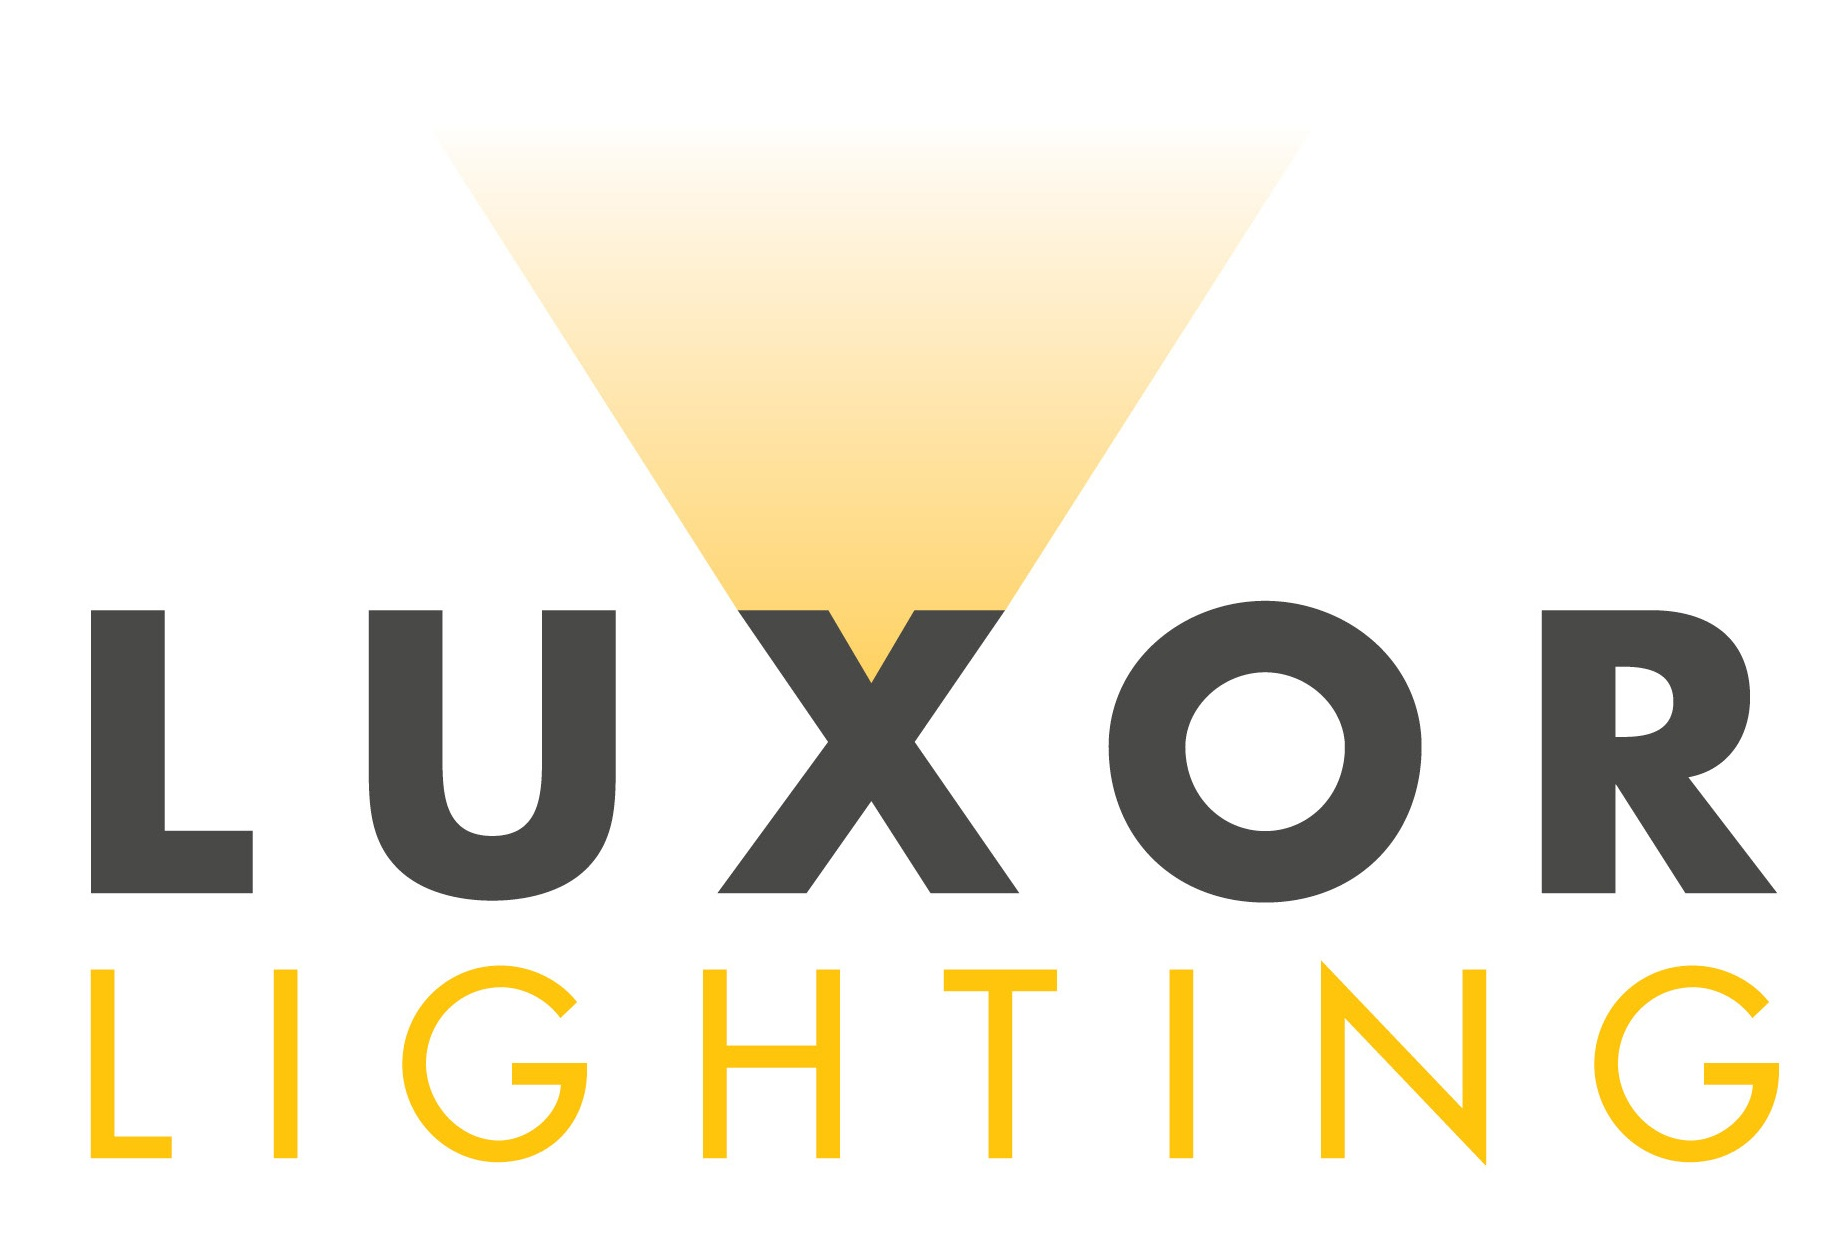 Luxor+Lighting+Logo+White+CMYK+AW.jpg